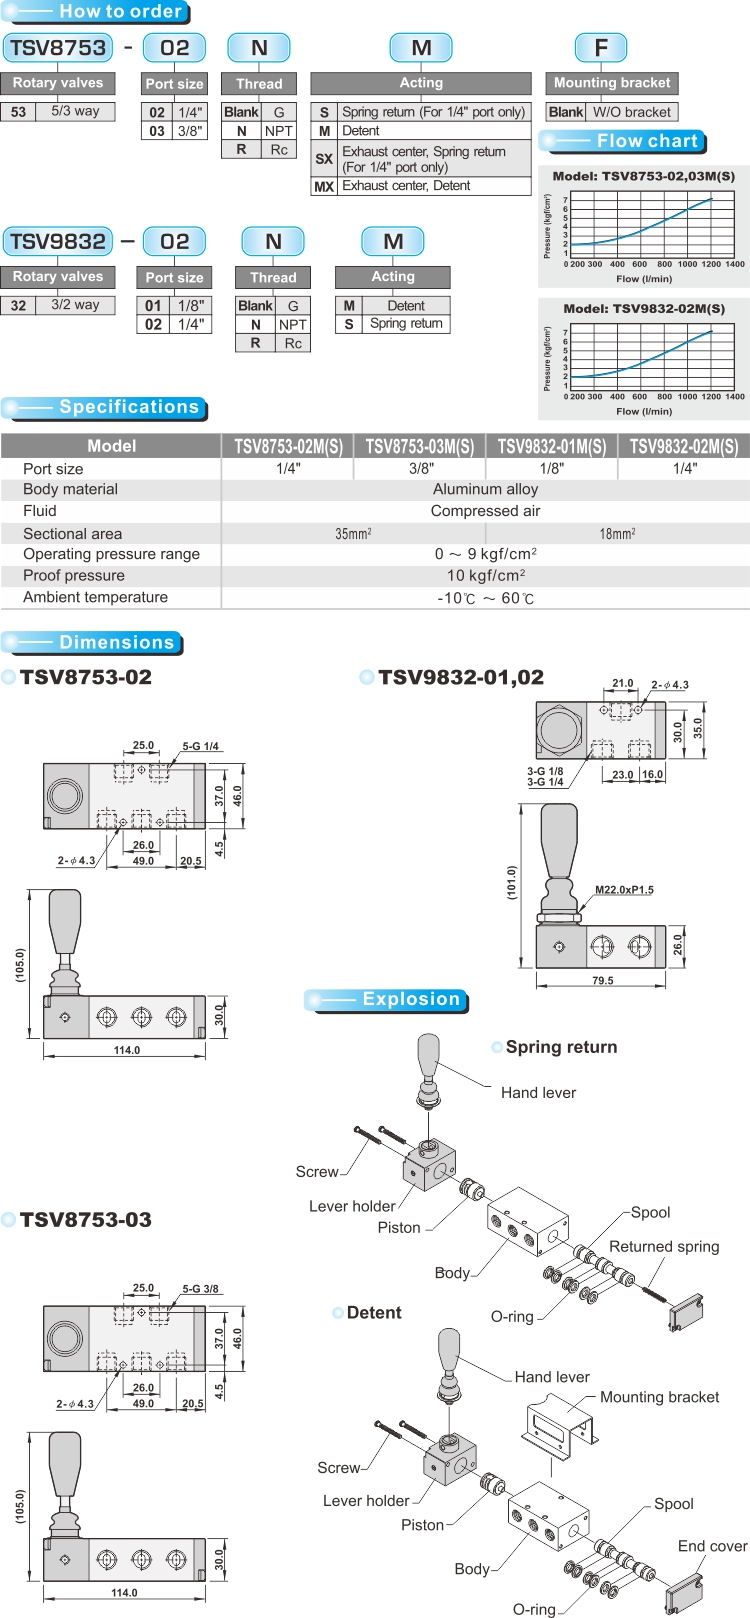 proimages/product_en/MECHANICAL_VALVES/TSV8753.jpg